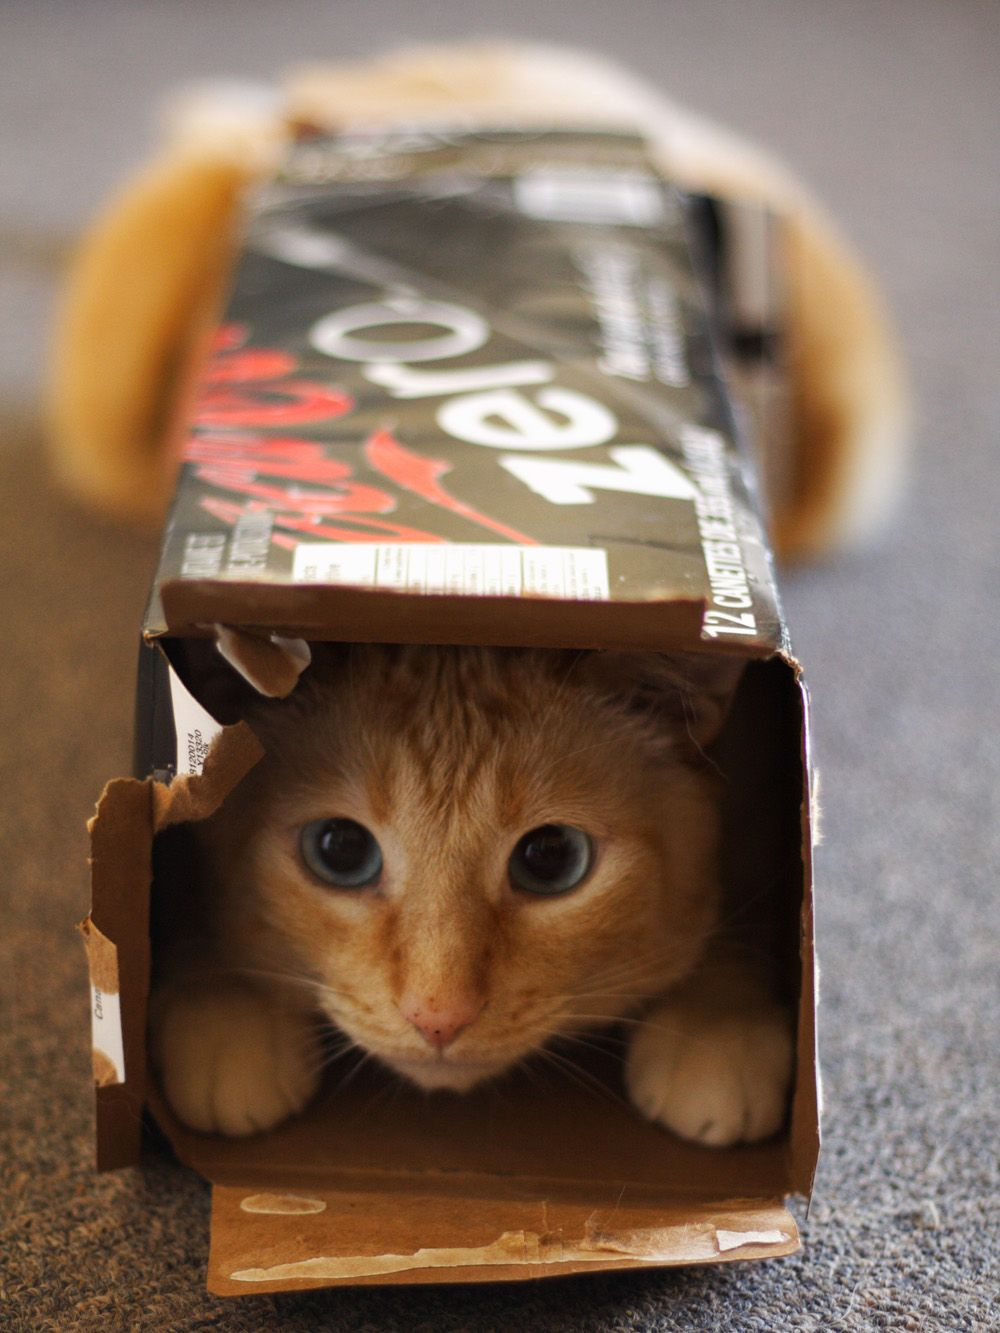 Why Do Cats Love Boxes So Much? Cute cats, Funny cat